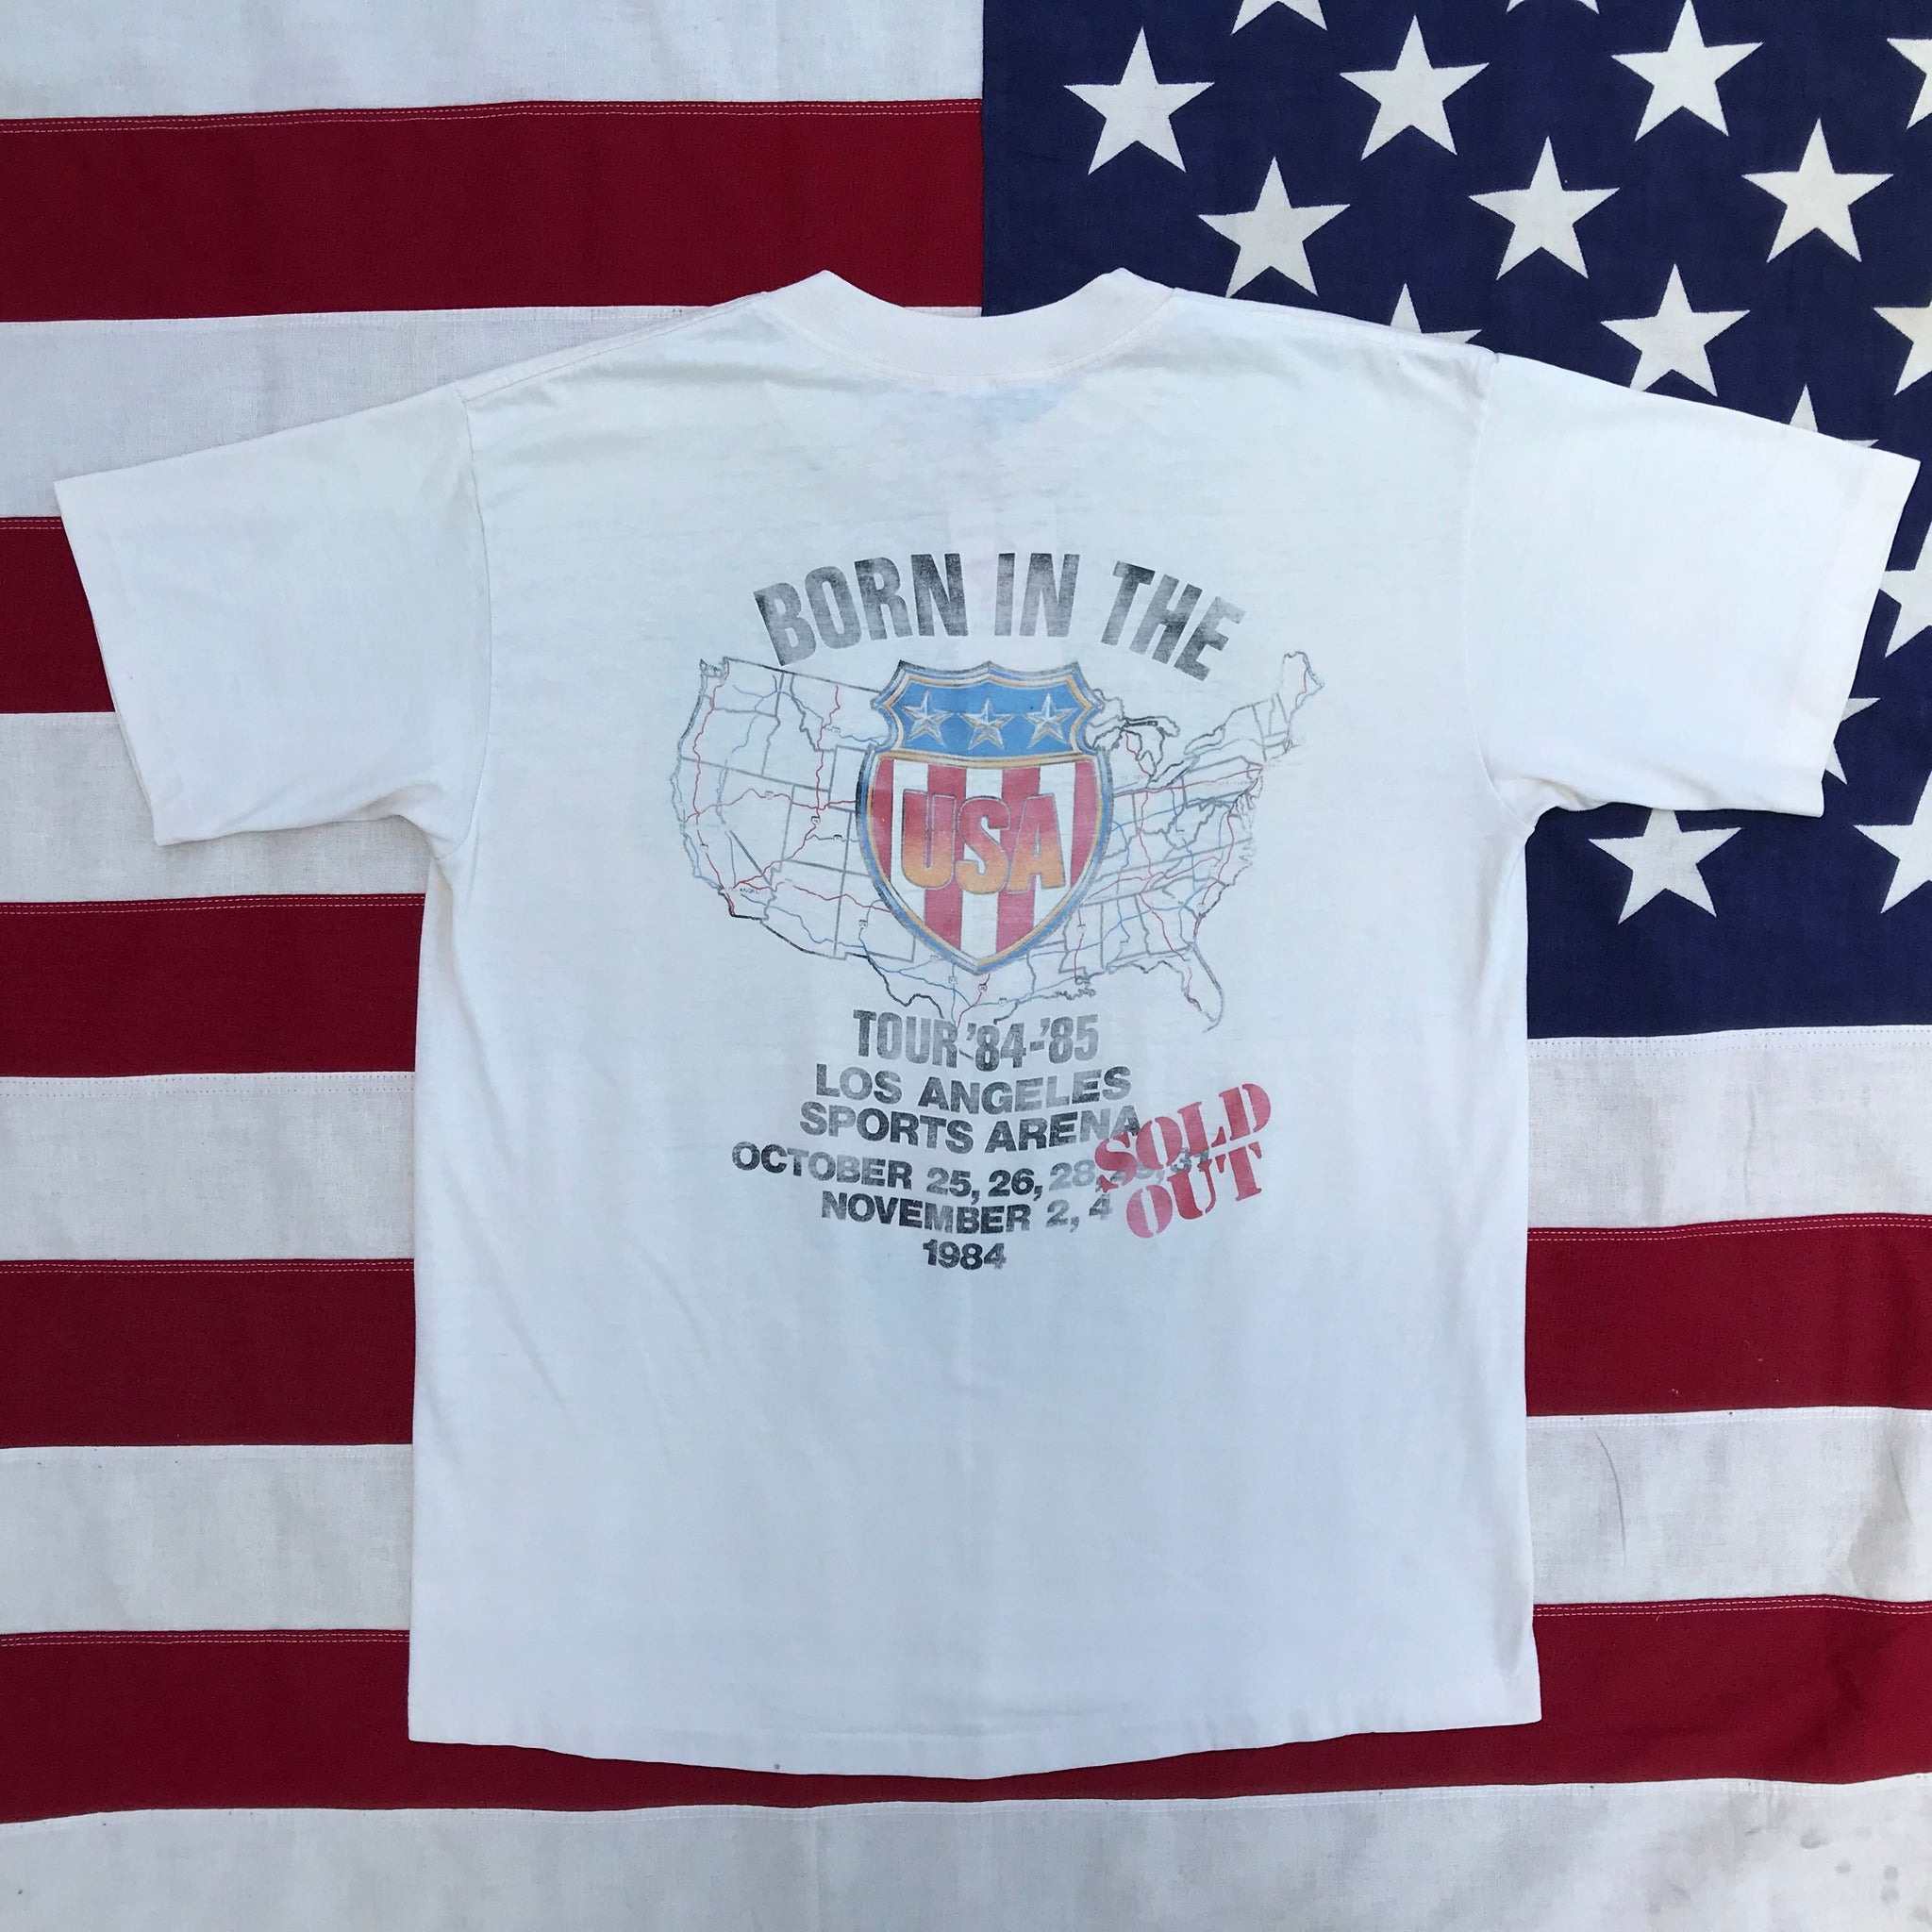 "Bruce Springsteen & The E Street Band "" Born In The USA Tour '84-'85 ""  LA Sports Arena RARE USA Original Vintage Rock T-Shirt By Winterland Productions USA"